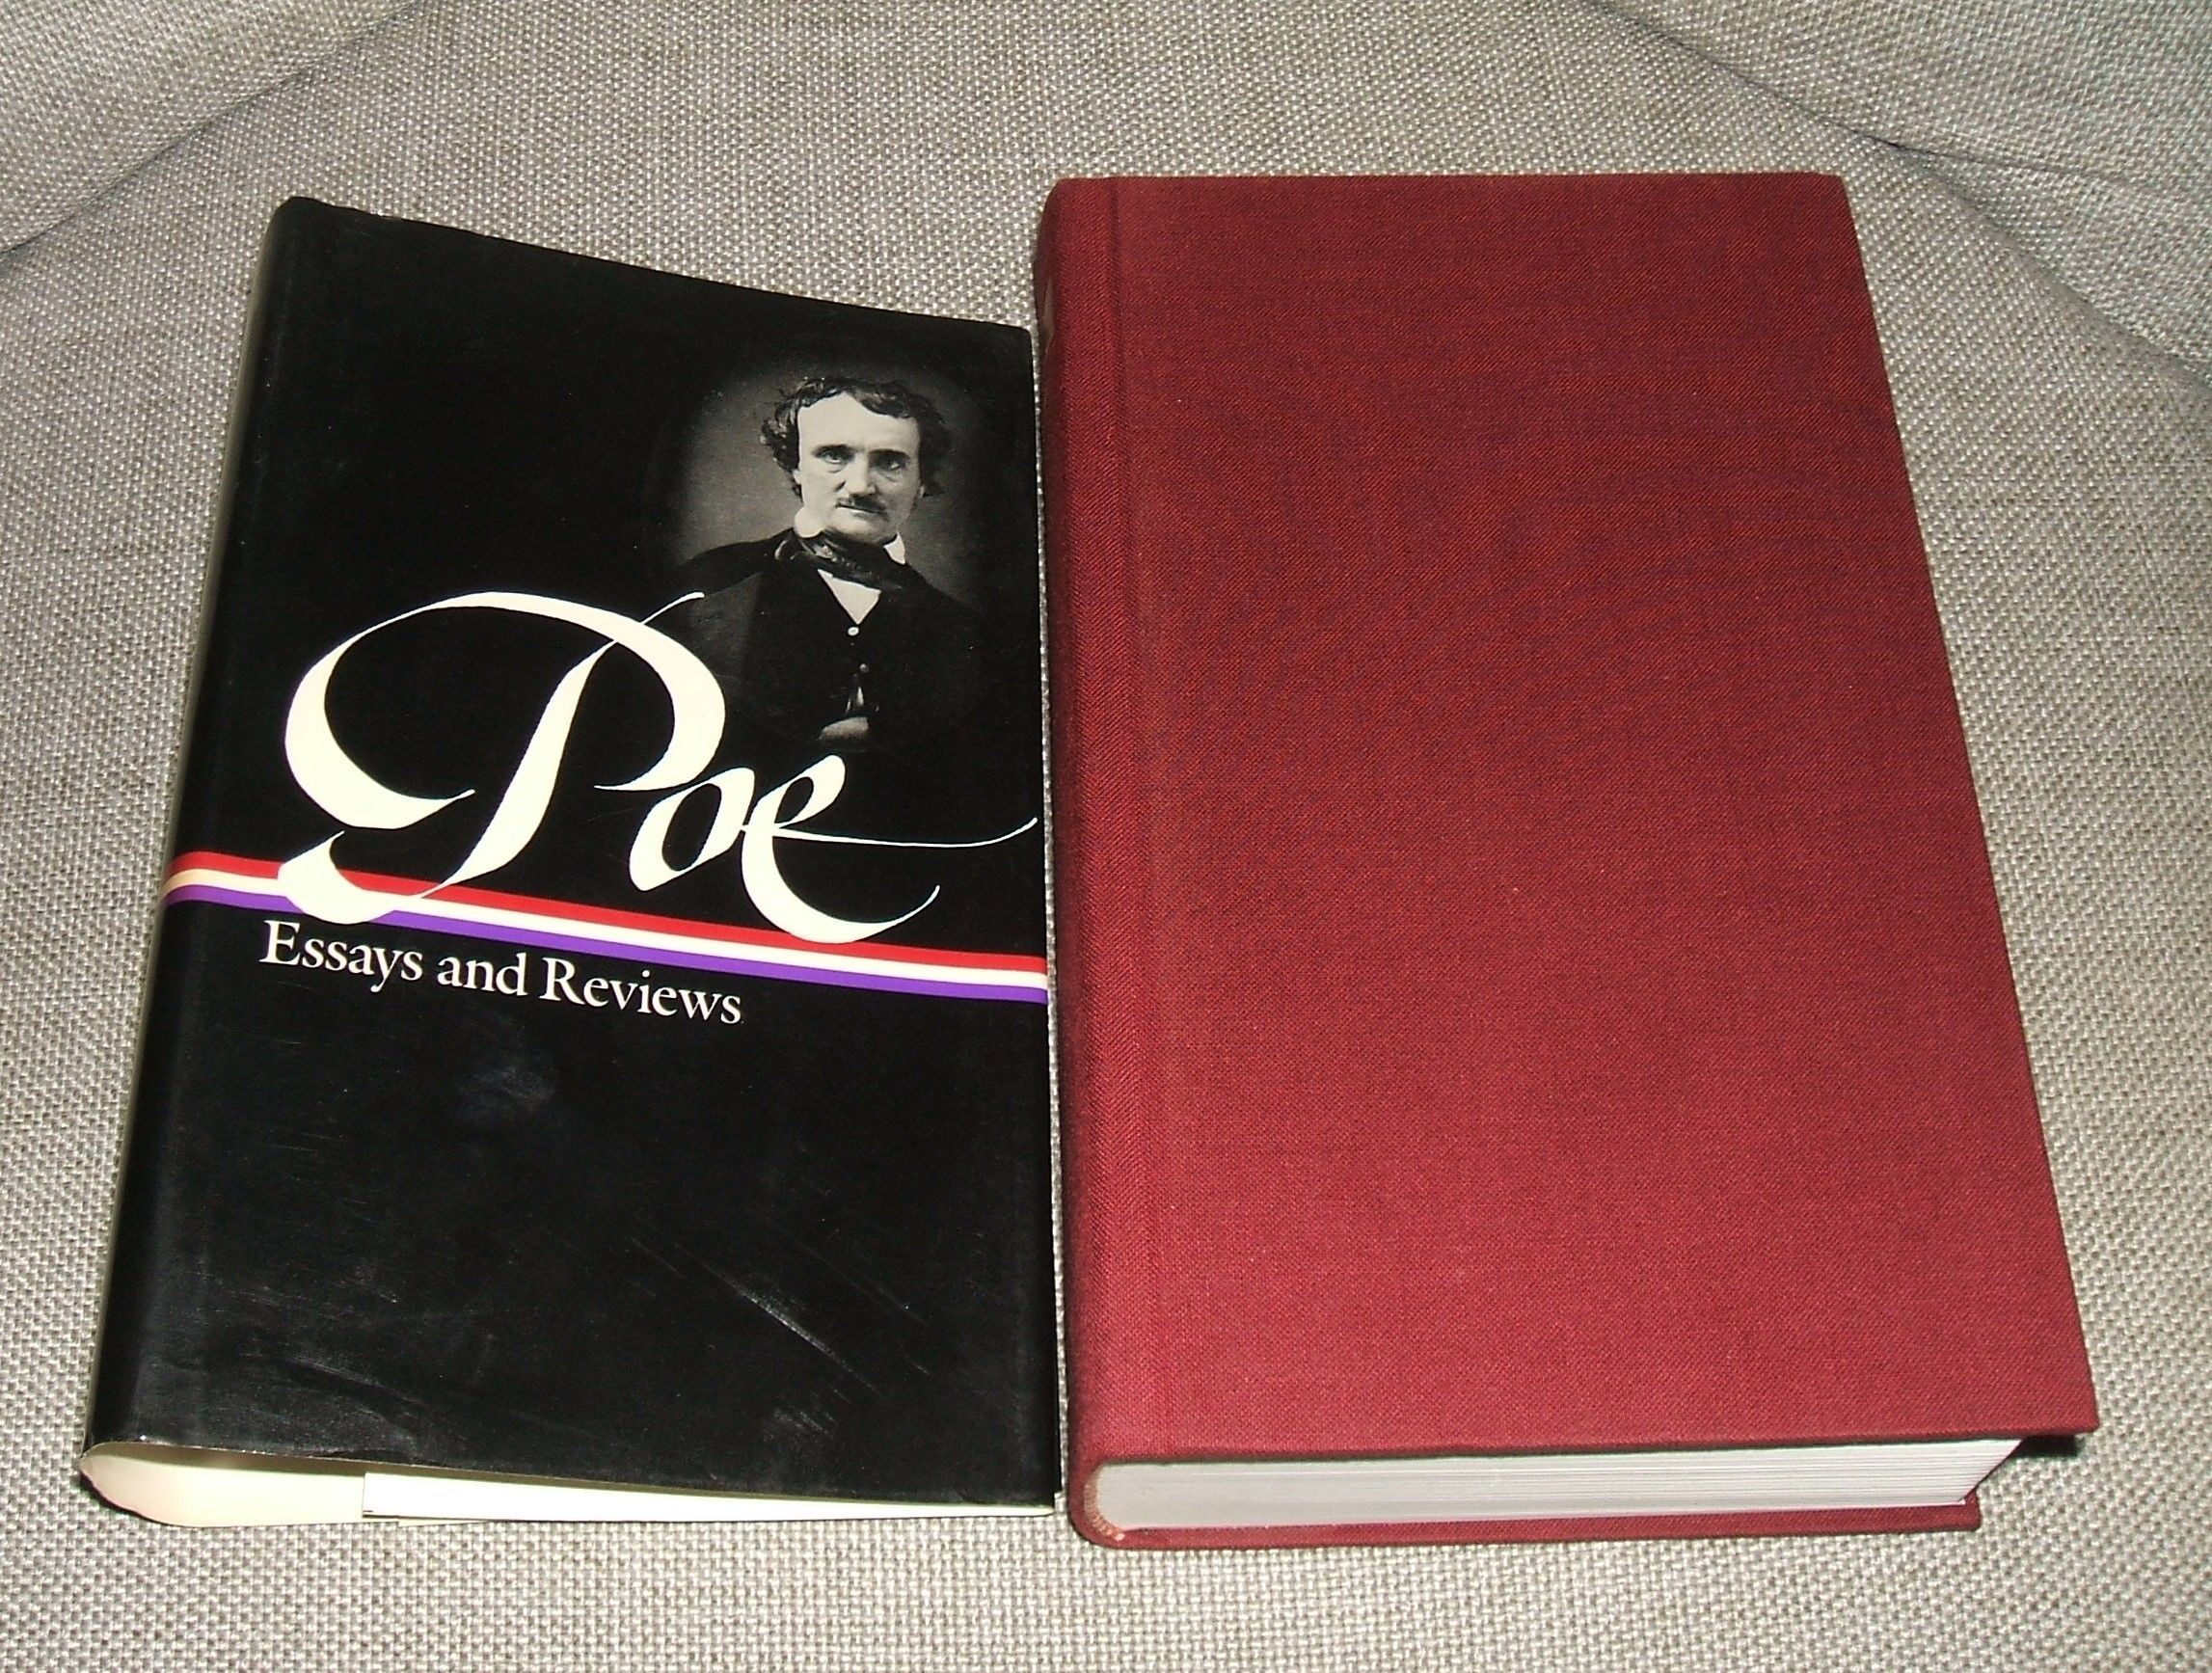 poe essays and reviews library of america